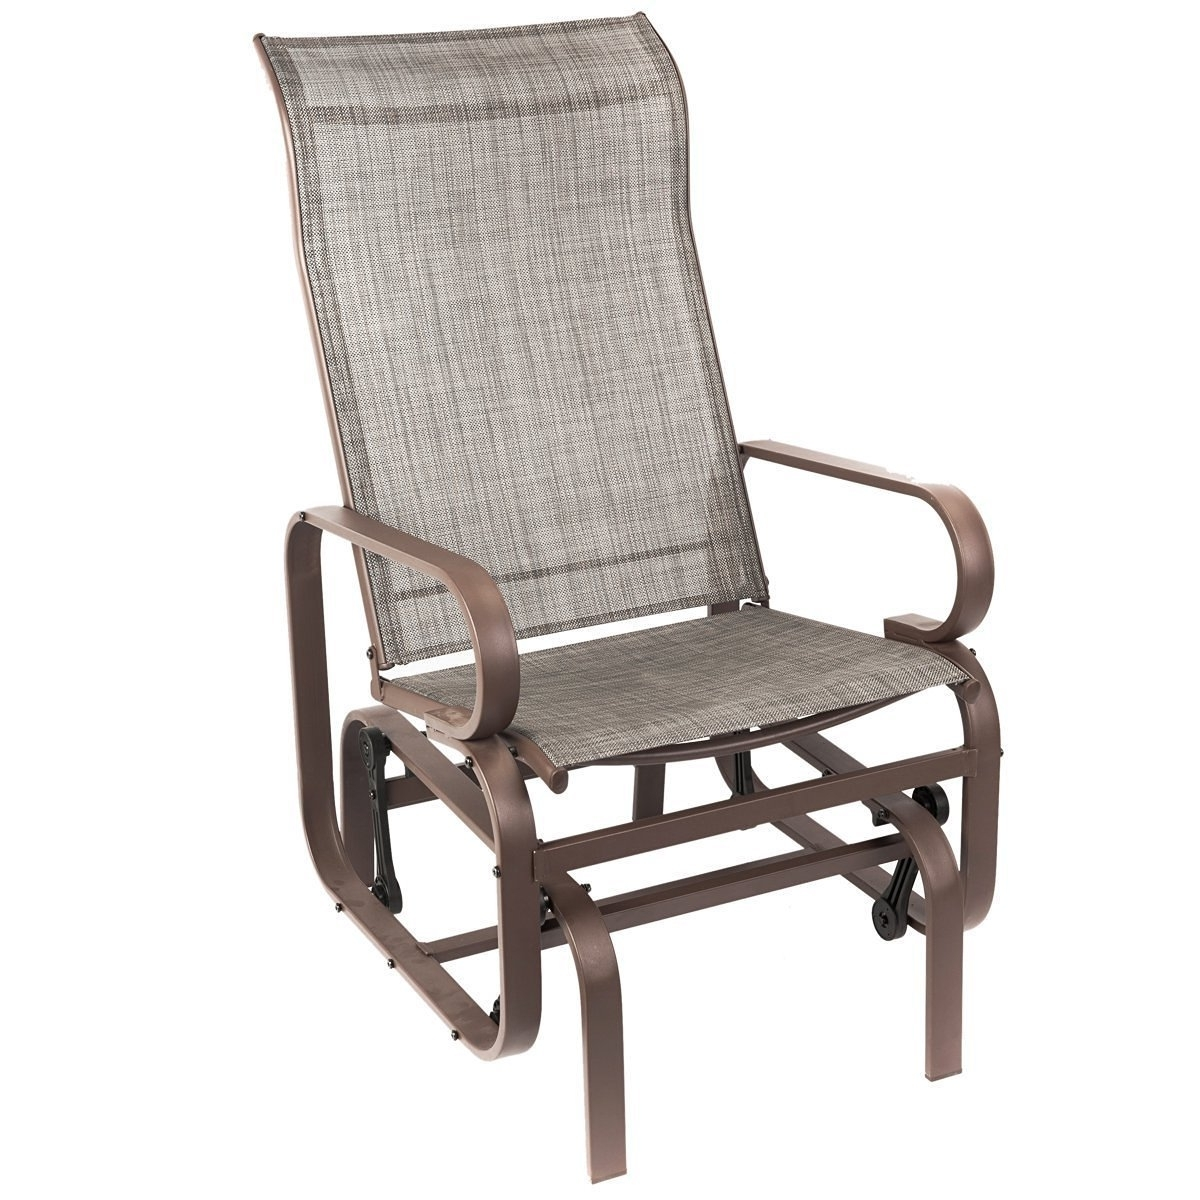 Trendy Rocking Chairs For Patio With Regard To Glider Chair For Patio – Decco.voiceoverservices (View 14 of 15)